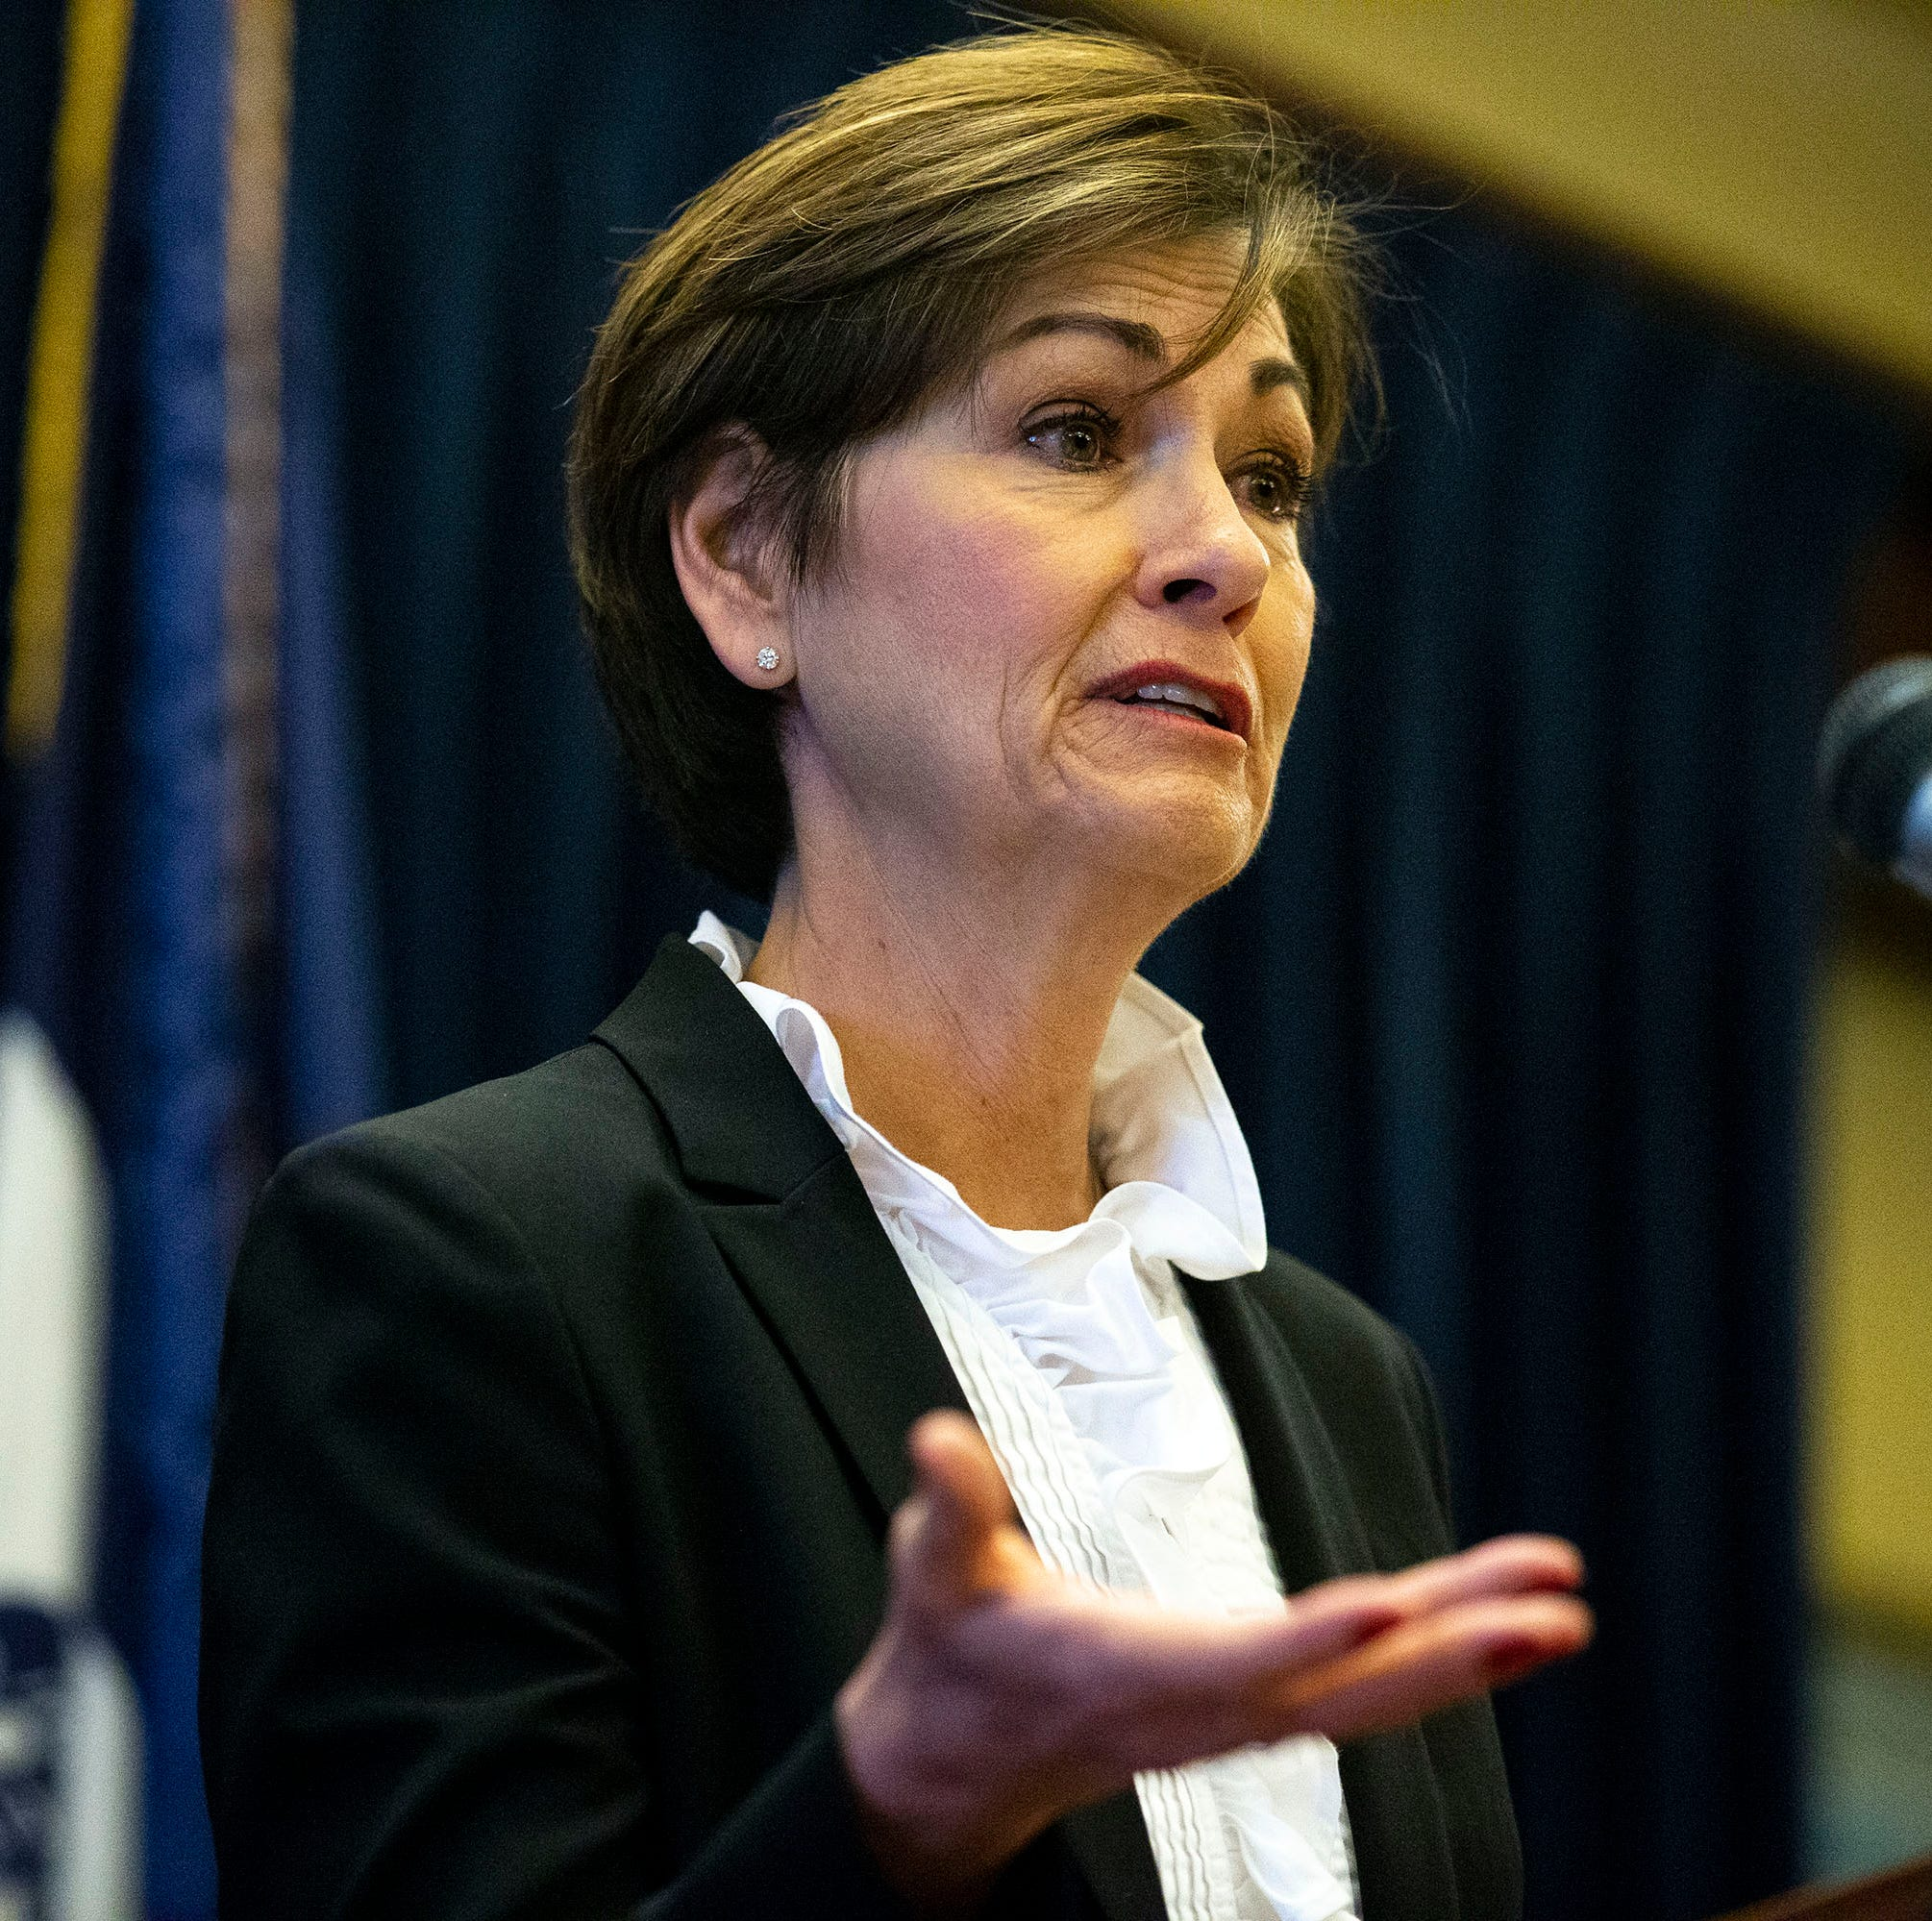 Bipartisan attorneys general ask Gov. Kim Reynolds to veto Iowa AG power-limits bill